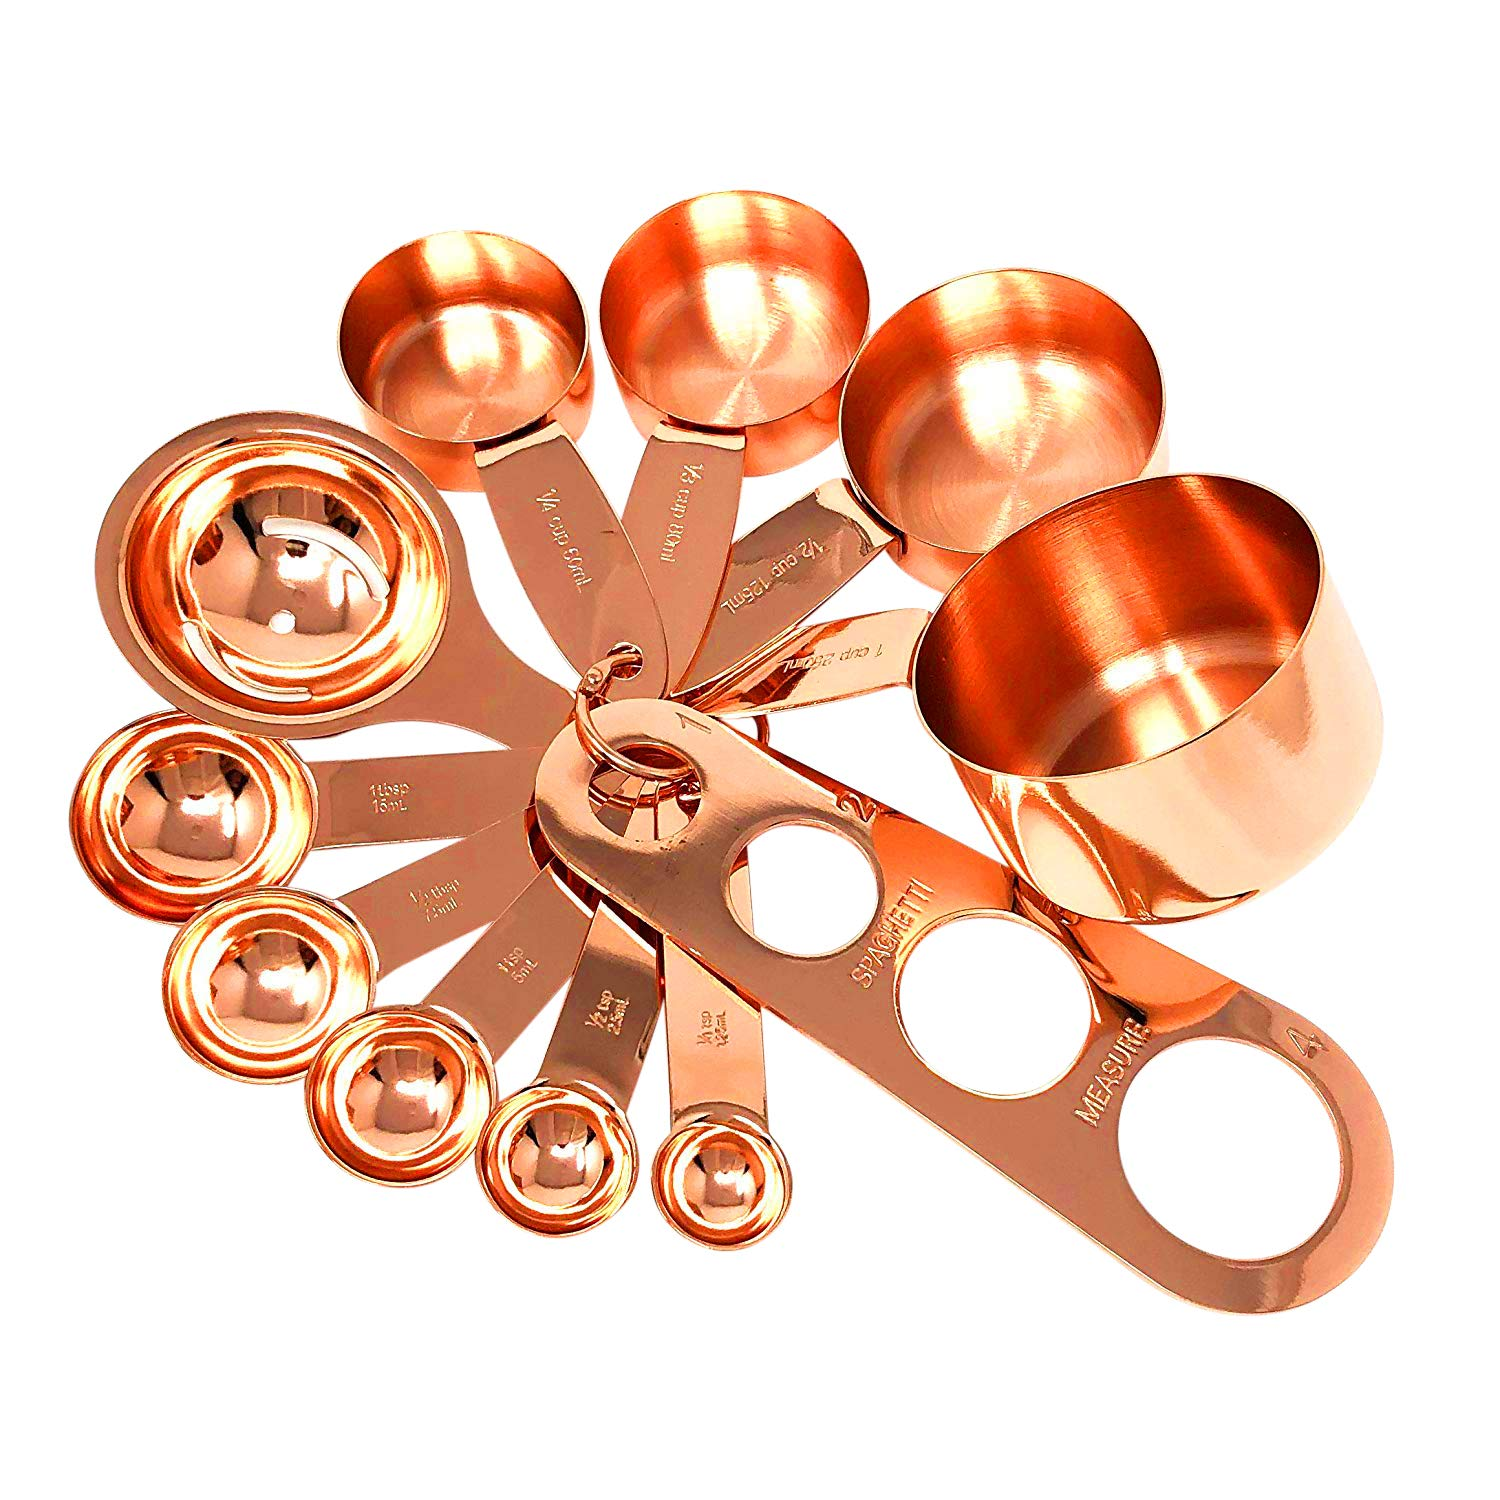 Copper Measuring Cups and Measuring Spoon Set in Rose Gold Stainless Steel Nesting Liquid and Dry Measuring Kitchen Set for Cooking by Homey Product